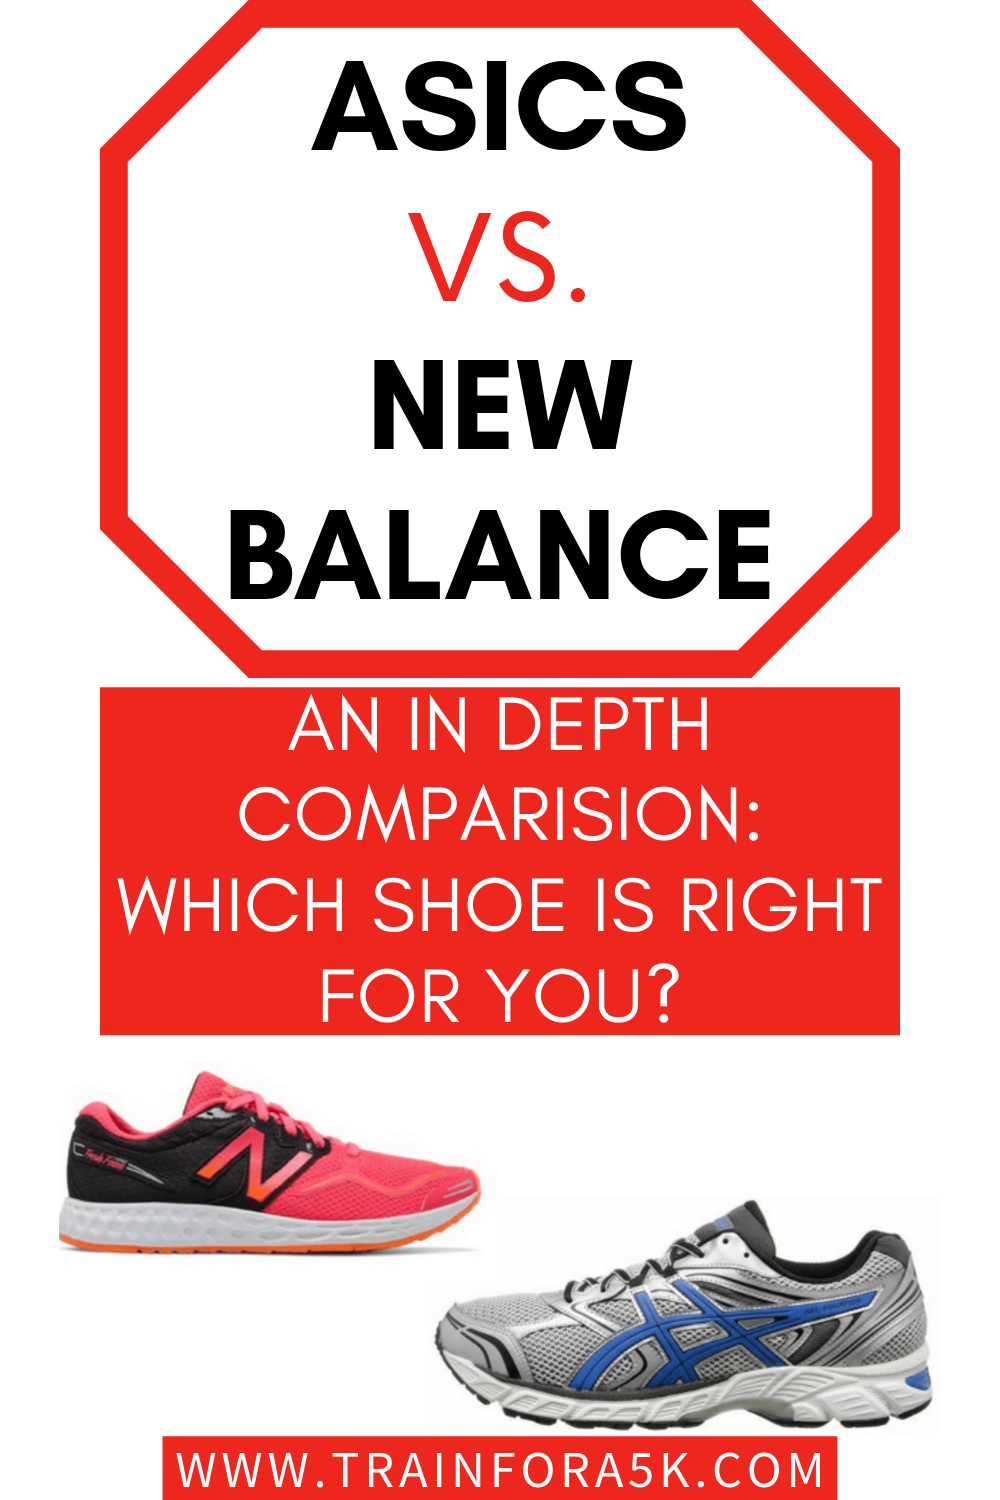 asics vs new balance running shoes